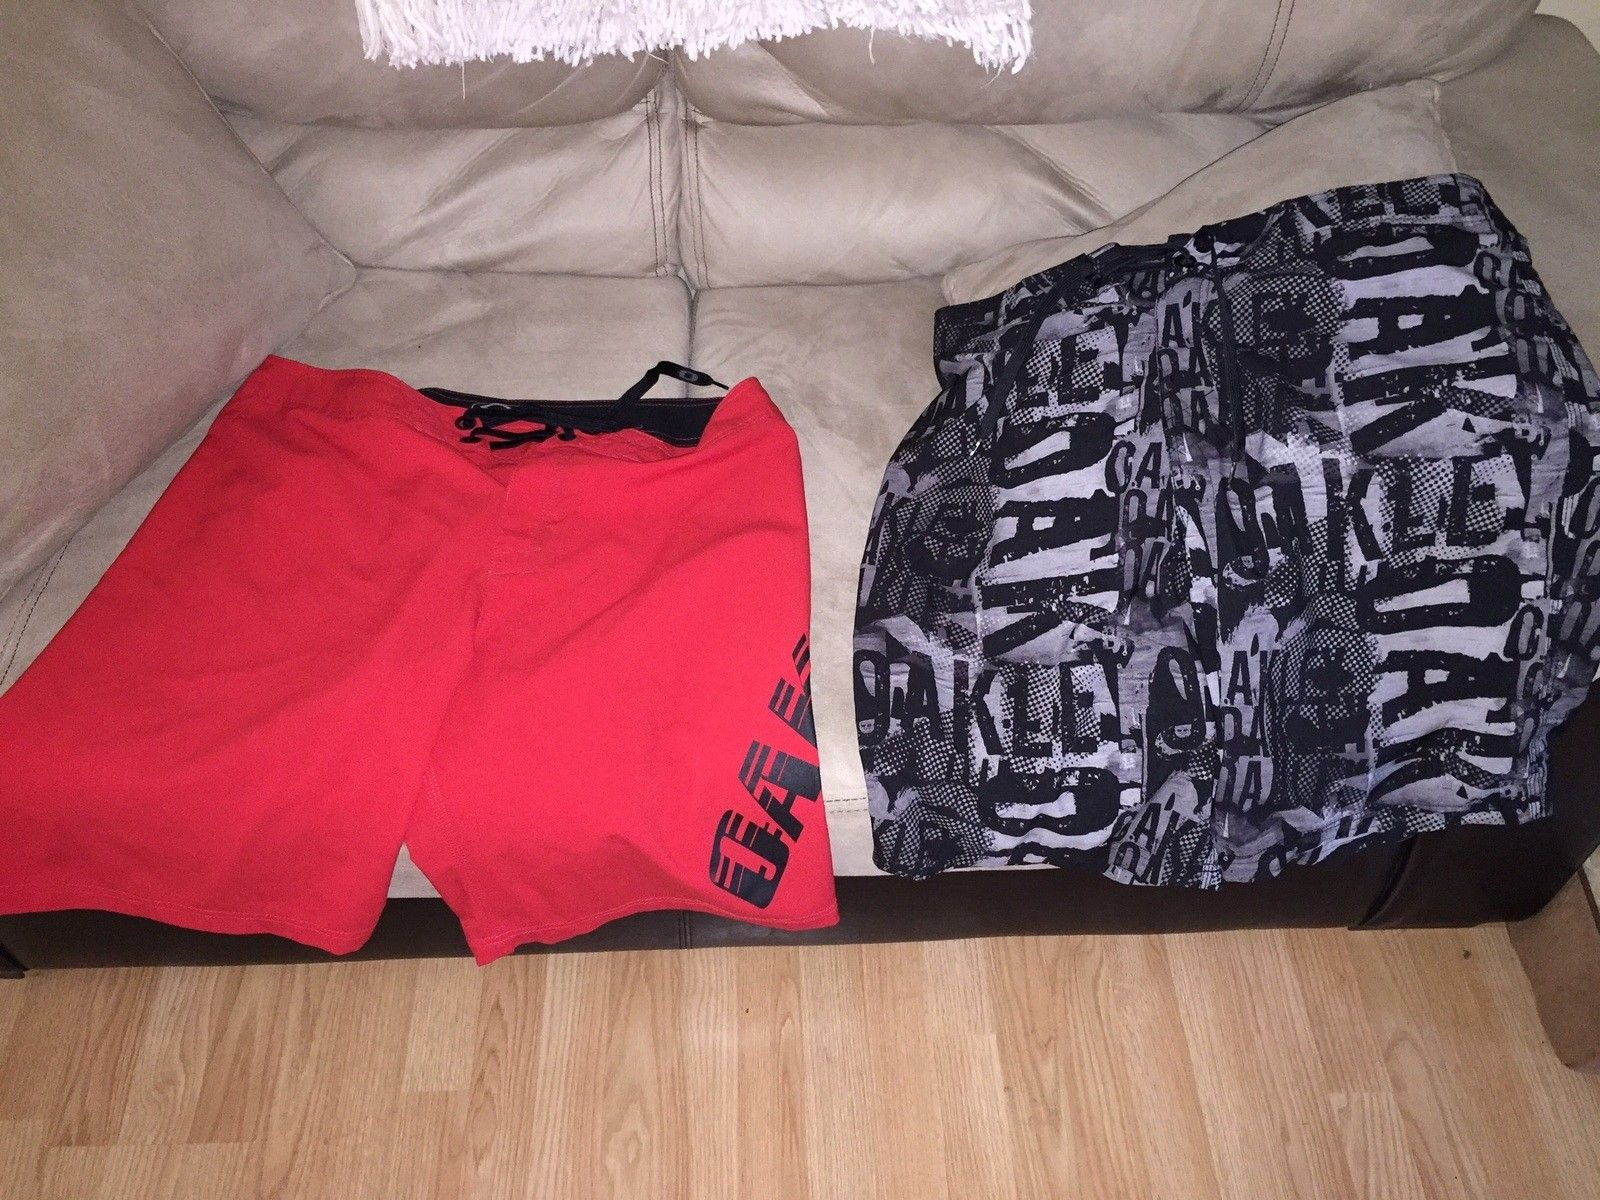 2 pair Oakley board shorts - image.jpg